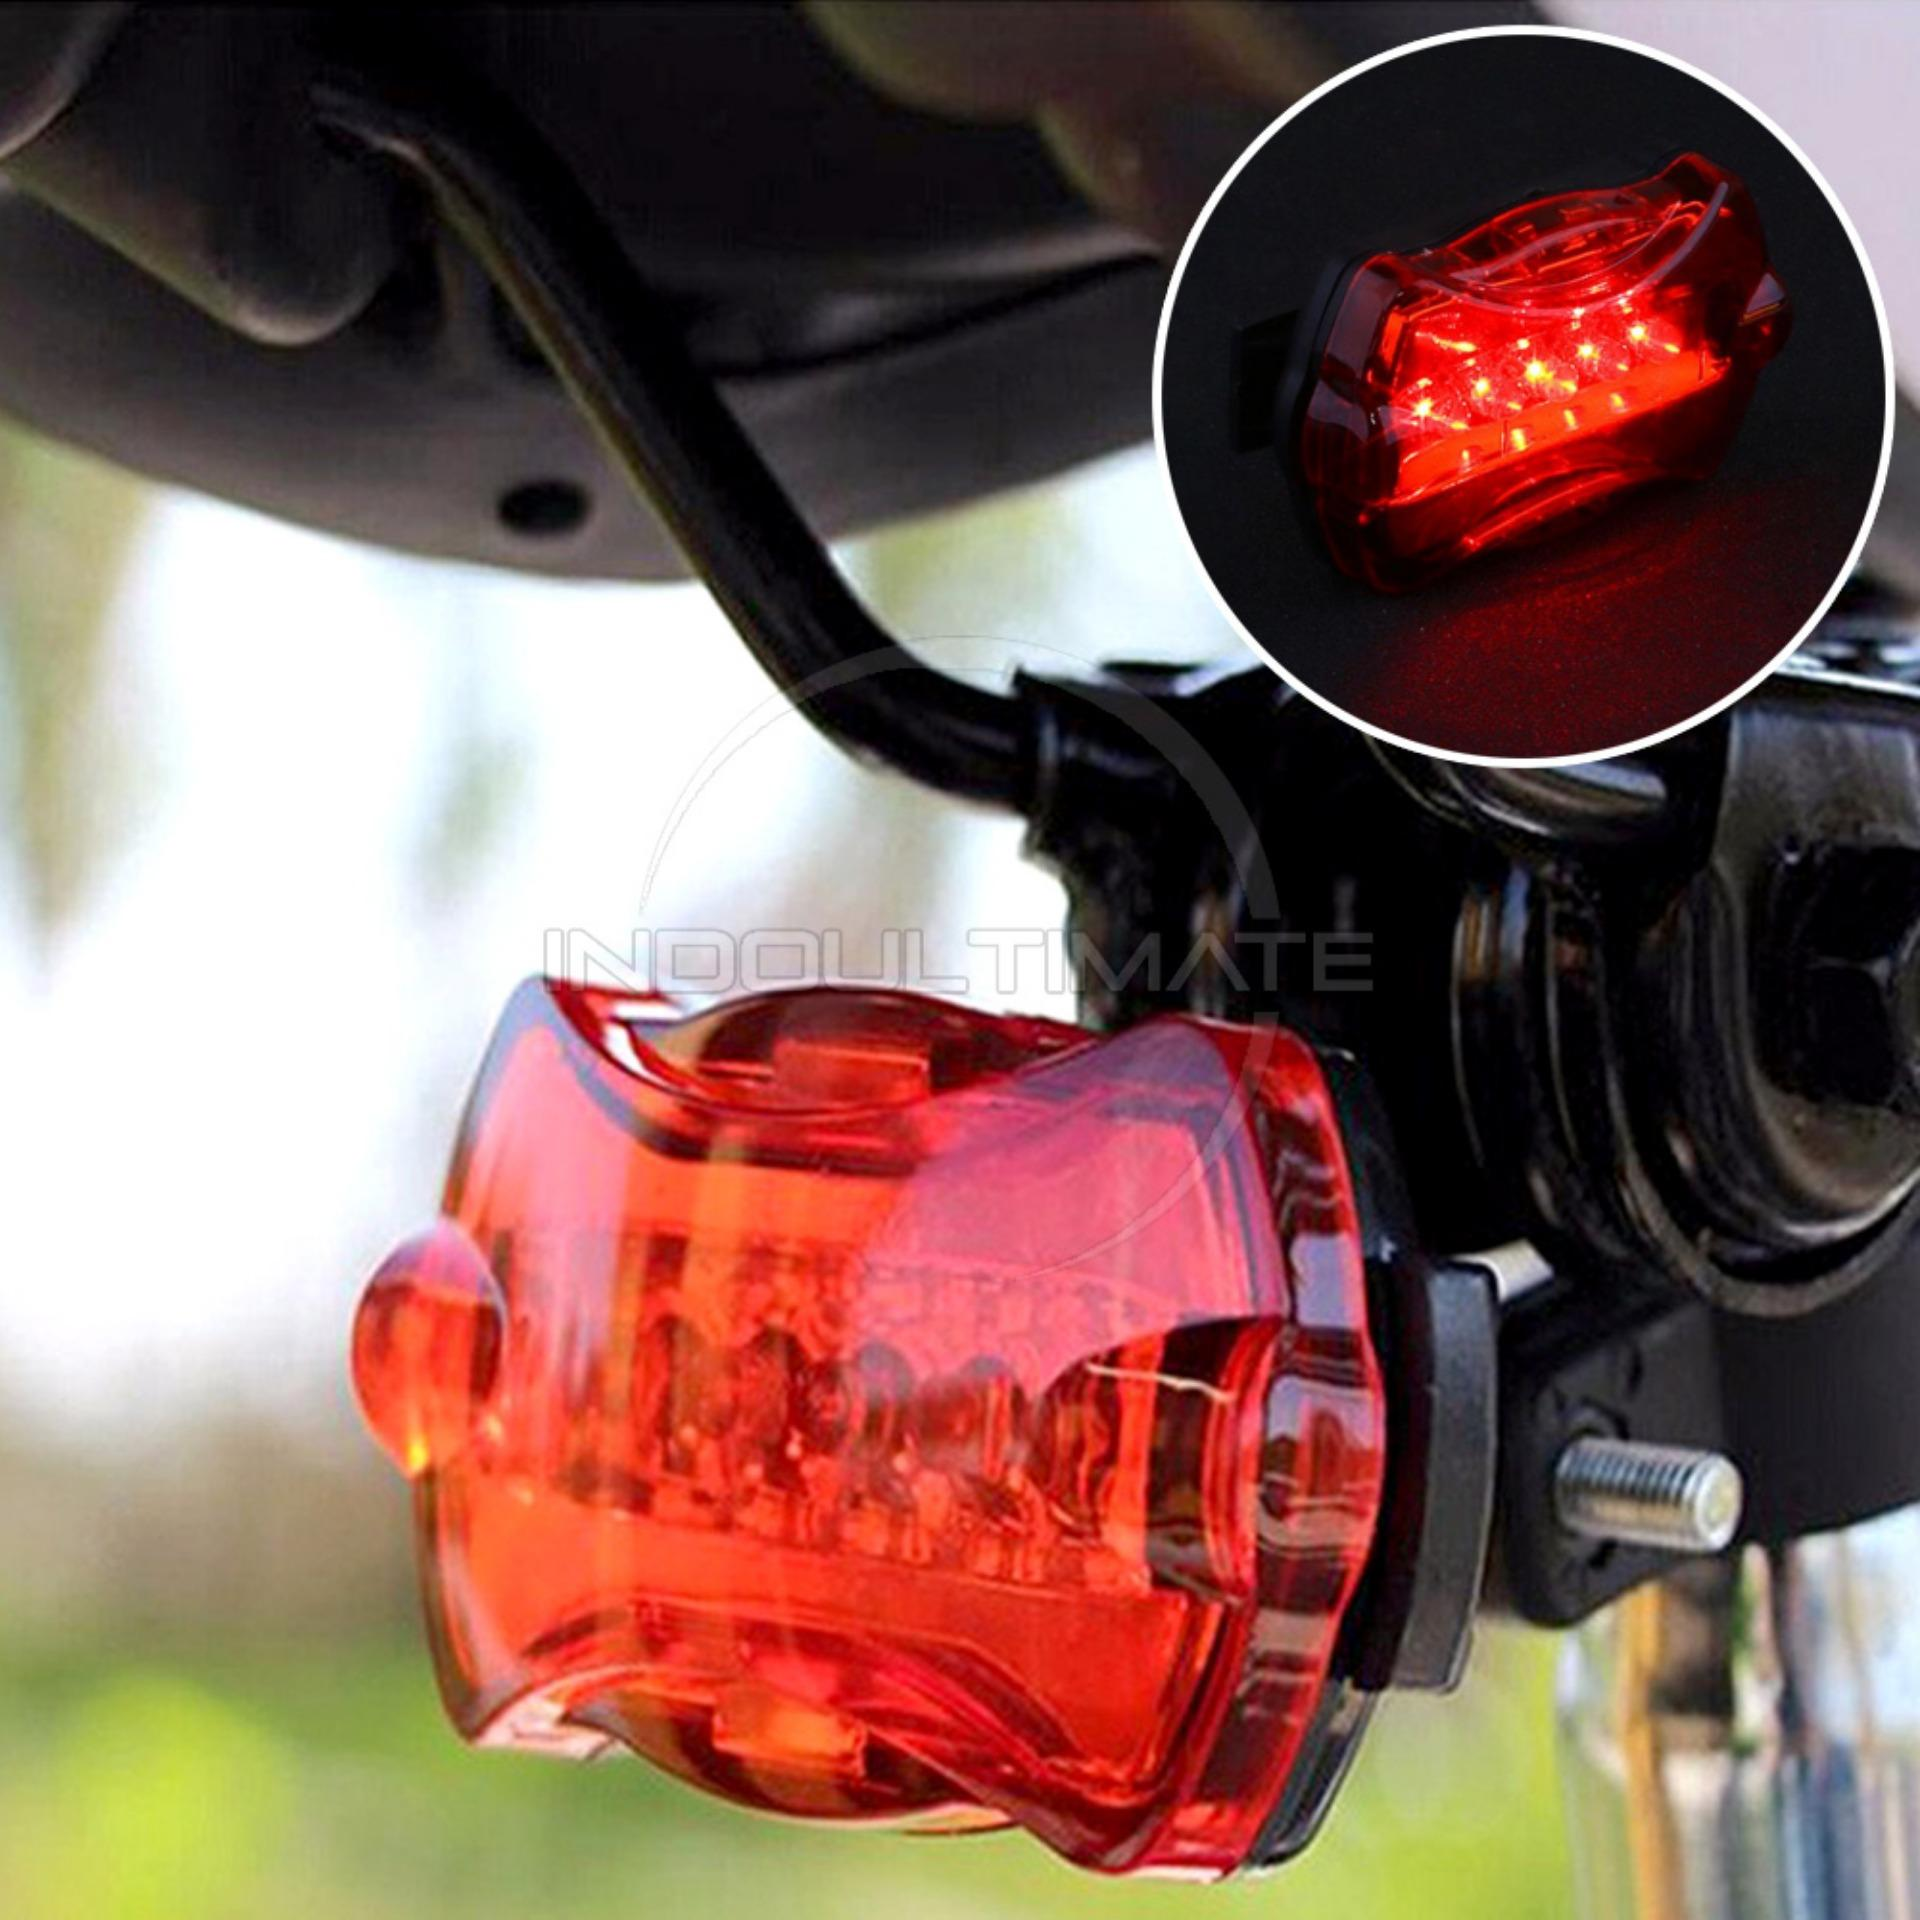 Lampu Belakang Sepeda 5 Flash LED/Senter/Lazer/Safety warning Light HL LS-01